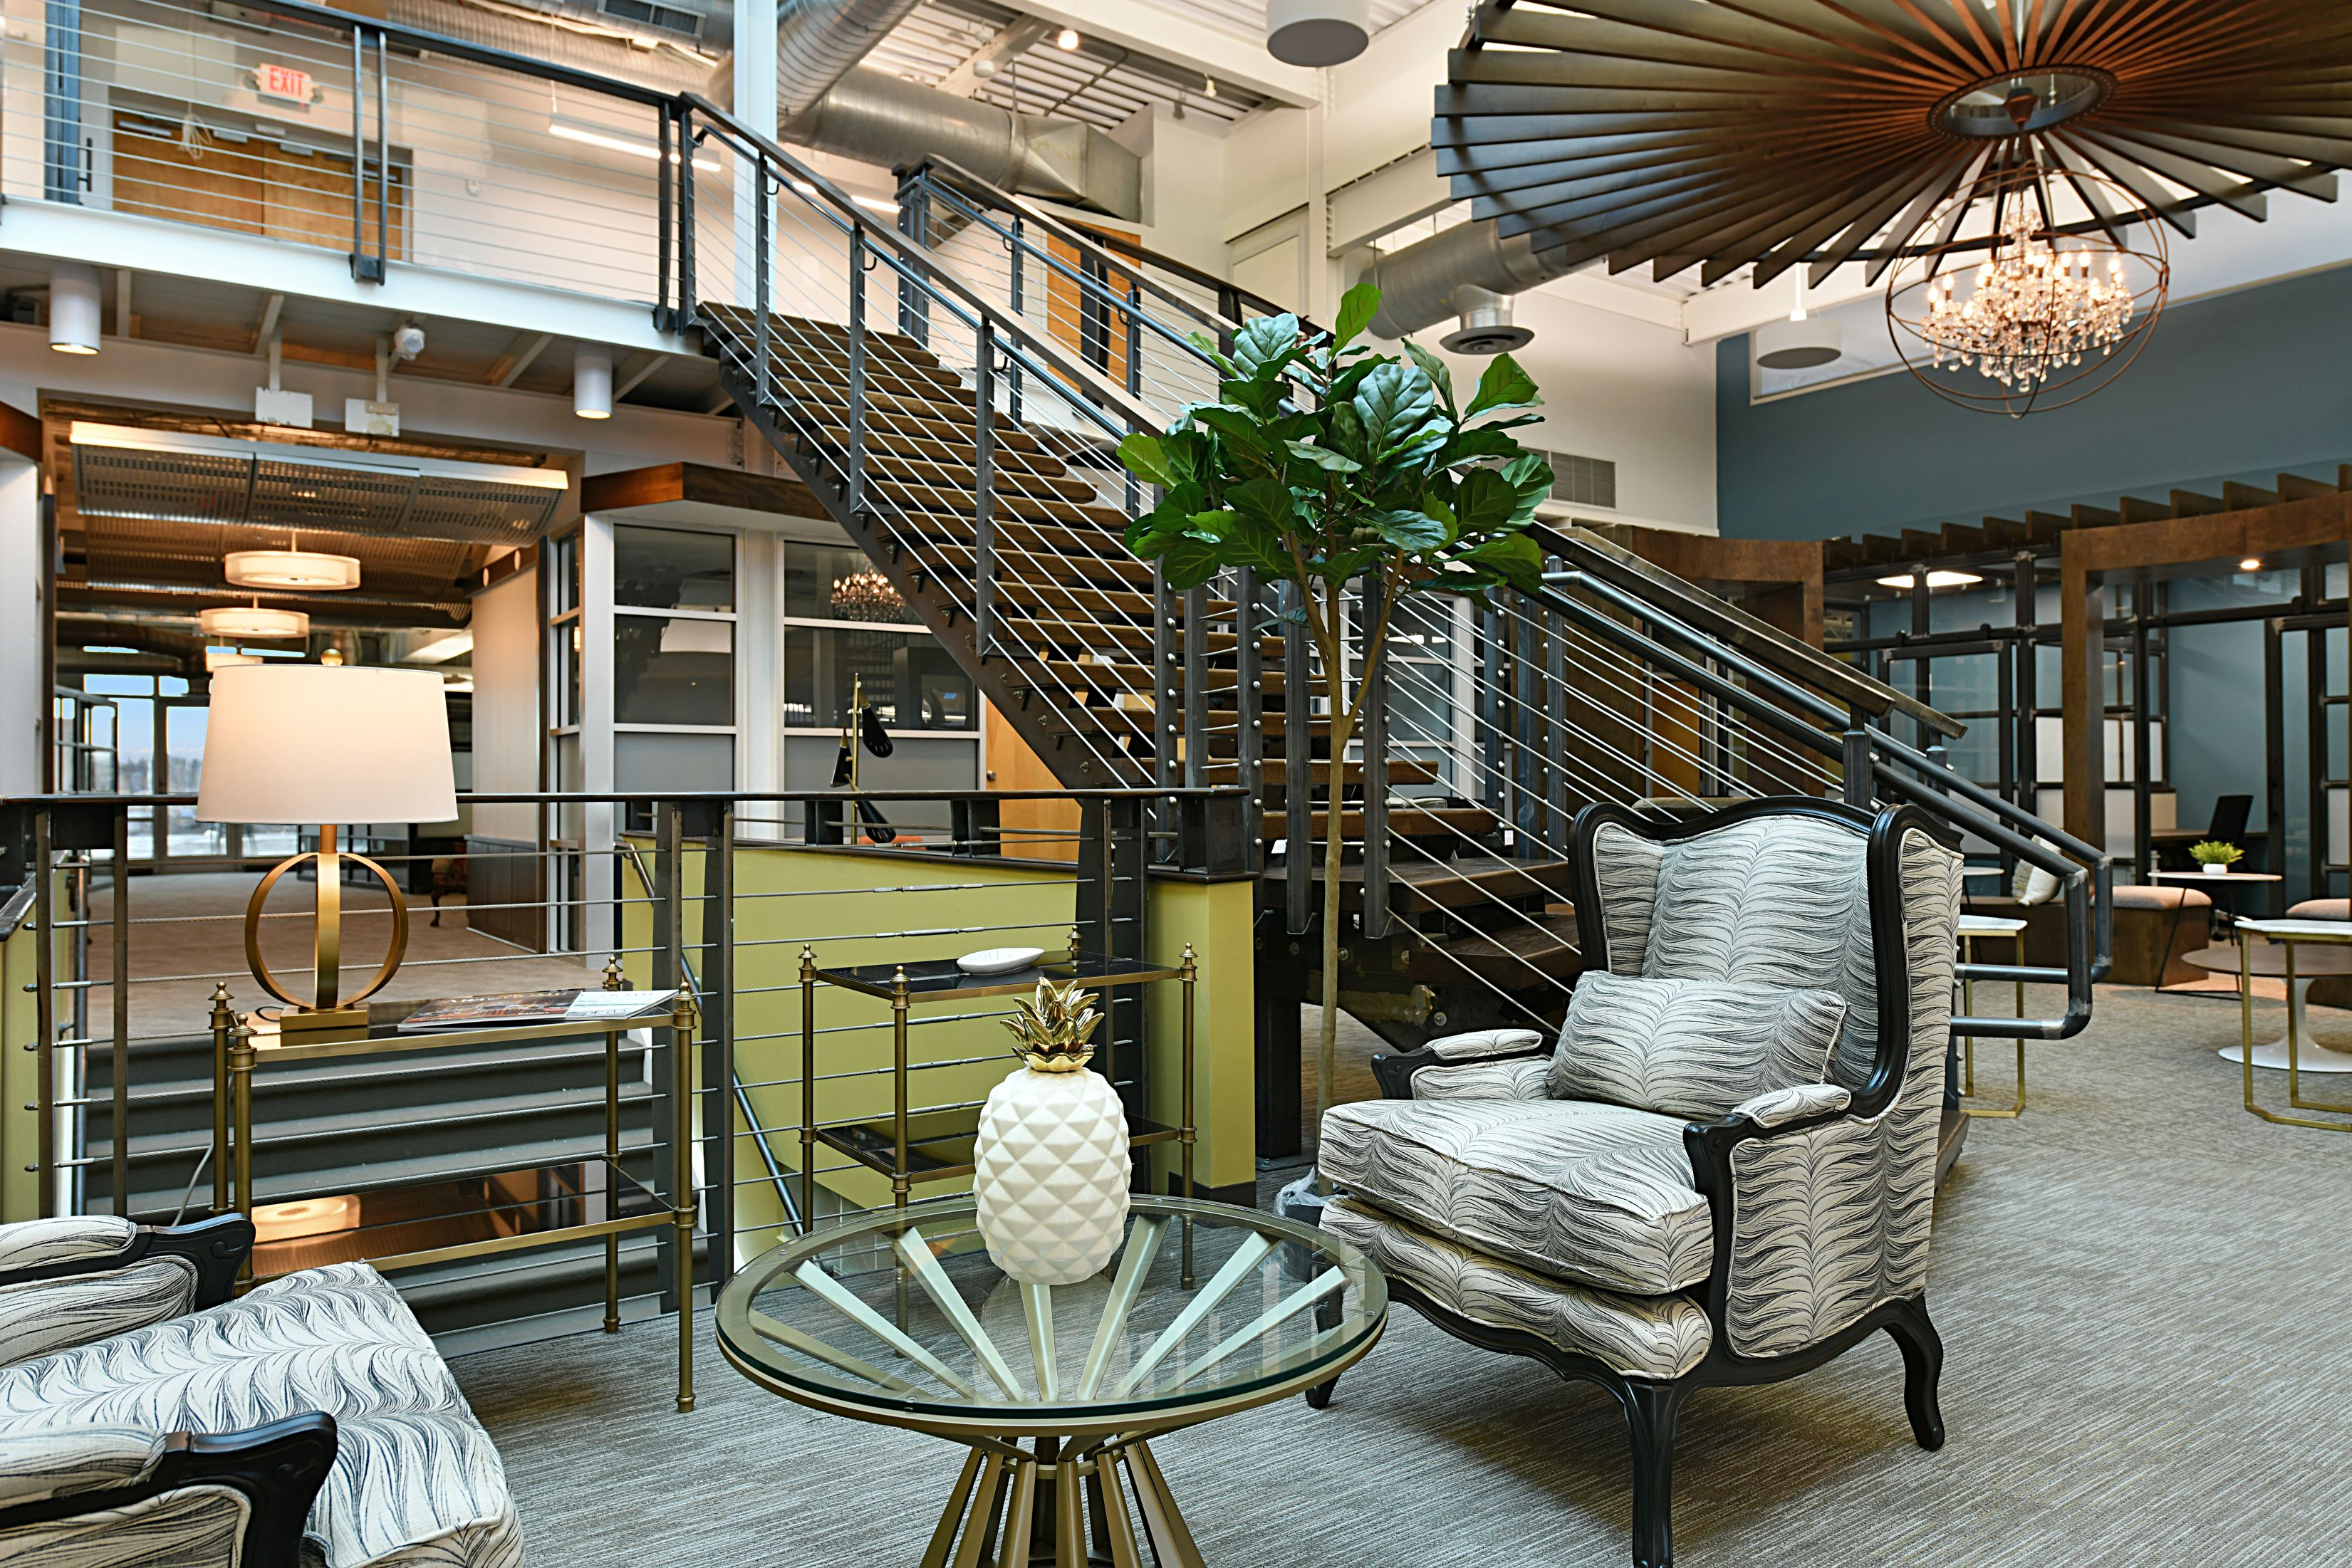 new co working space versa dwarfs shared office competitors newswire